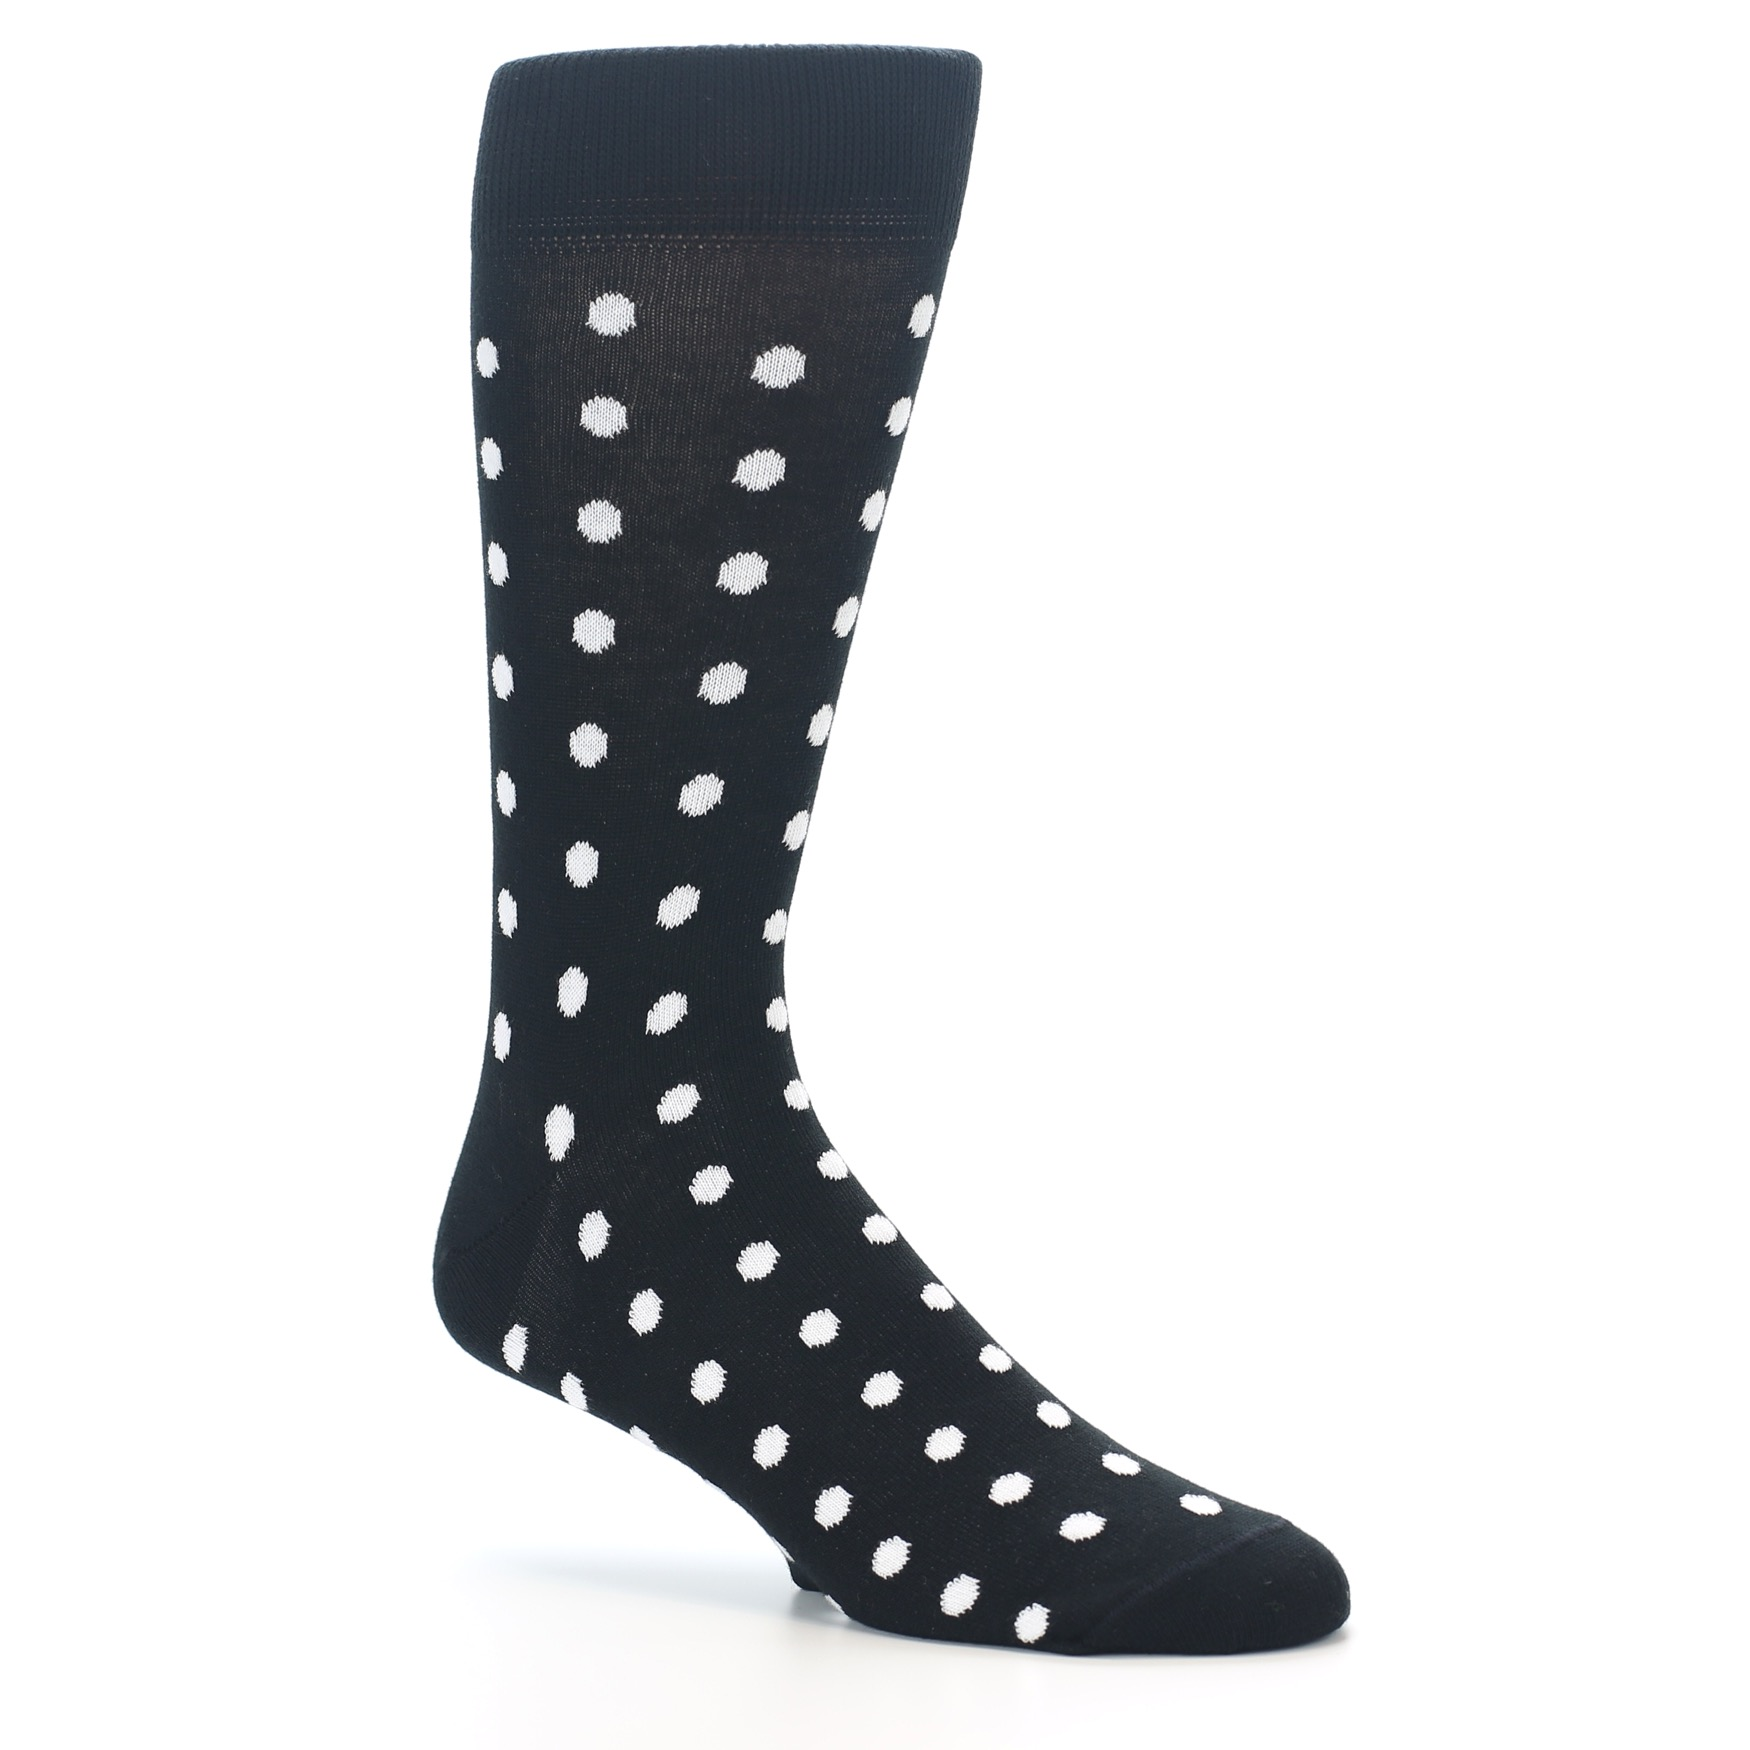 Men And Women Colored Polka Dots Patterned Compression Socks,1 Pair